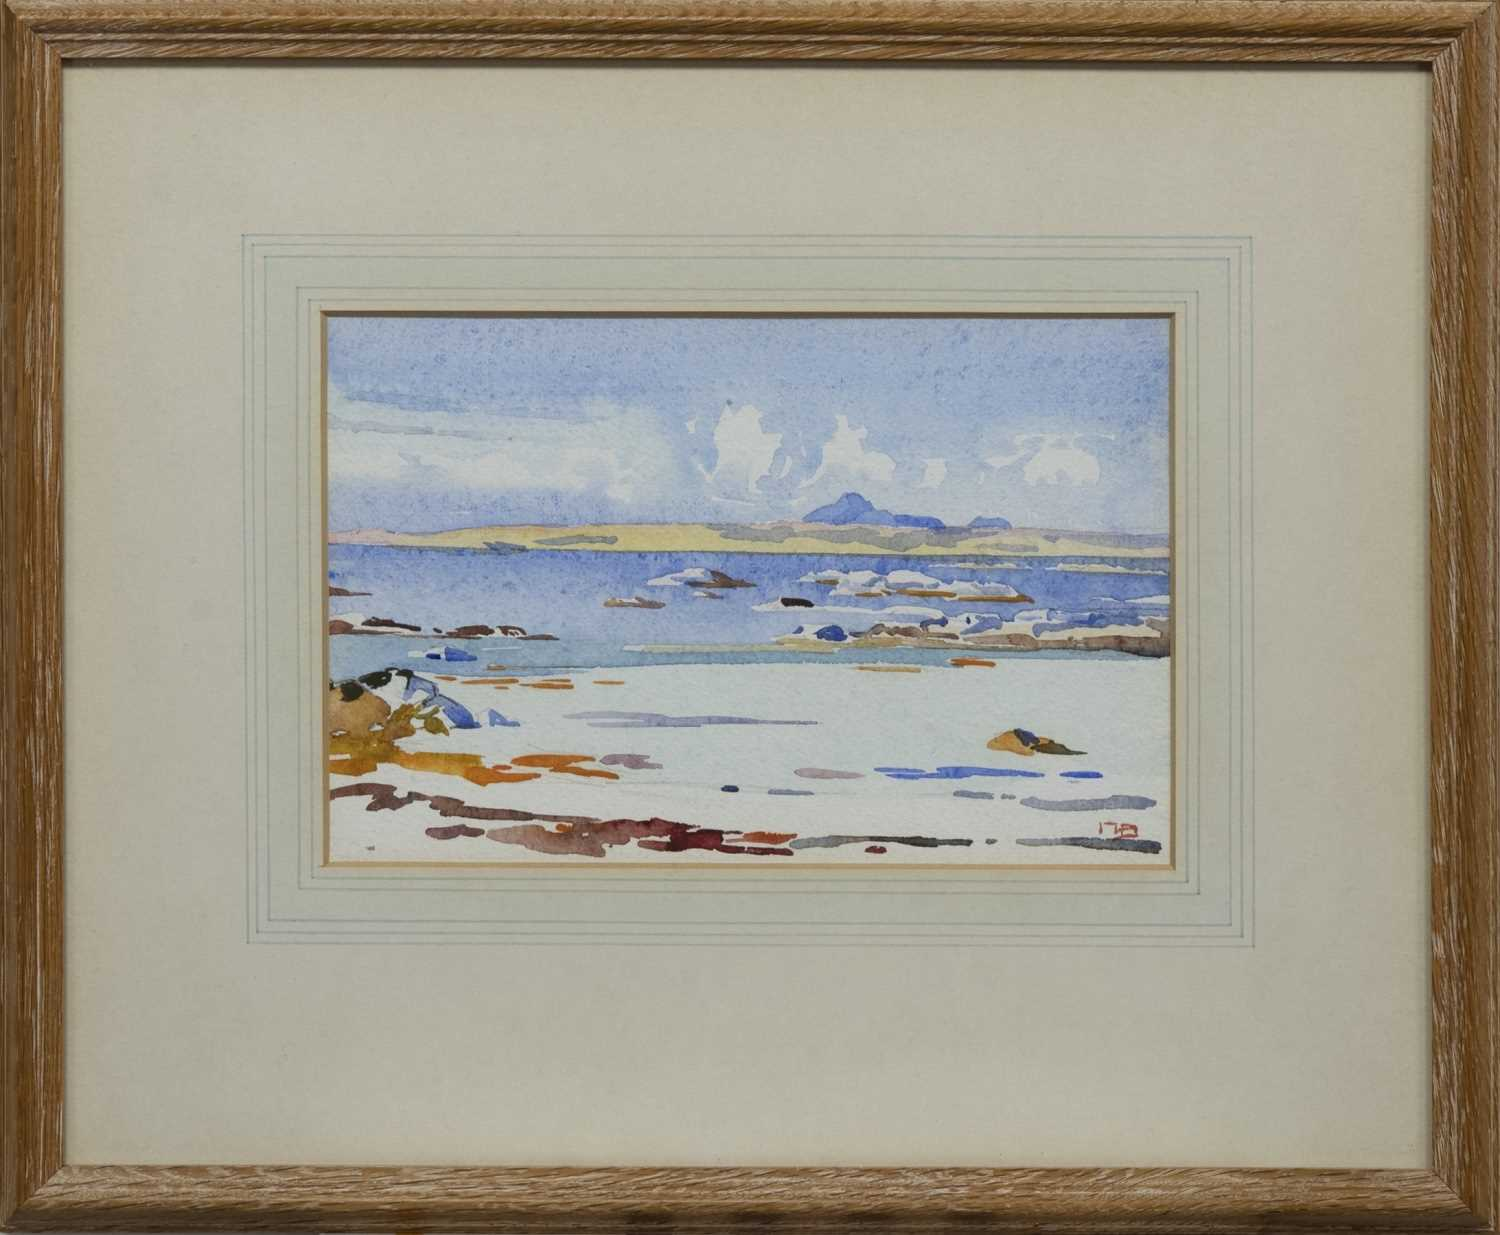 Lot 54 - A NEAP TIDE, IONA, A WATERCOLOUR BY MARY HOLDEN BIRD